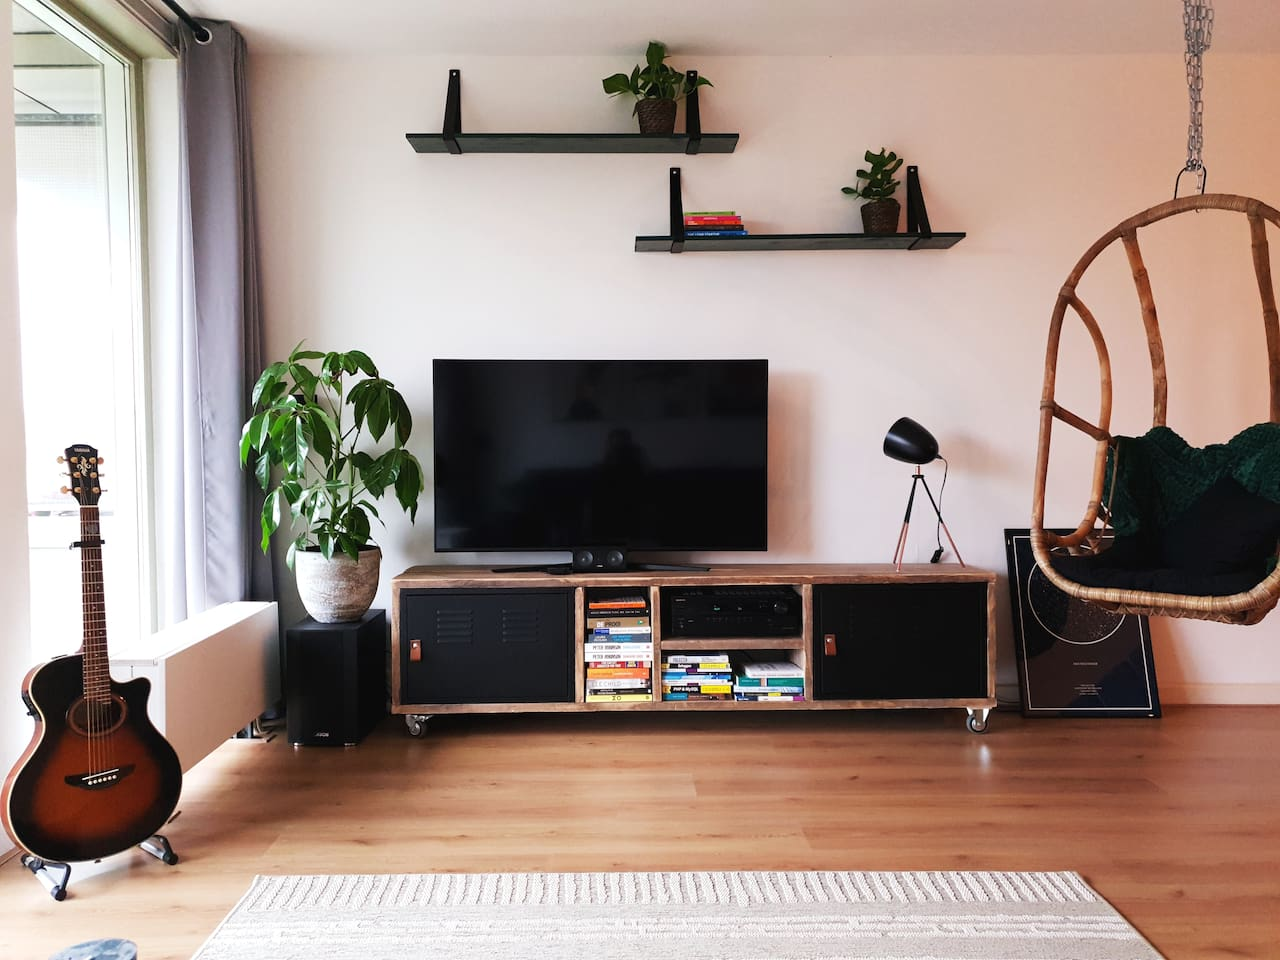 55 inch TV, 5.1 surround and hanging chair to relax